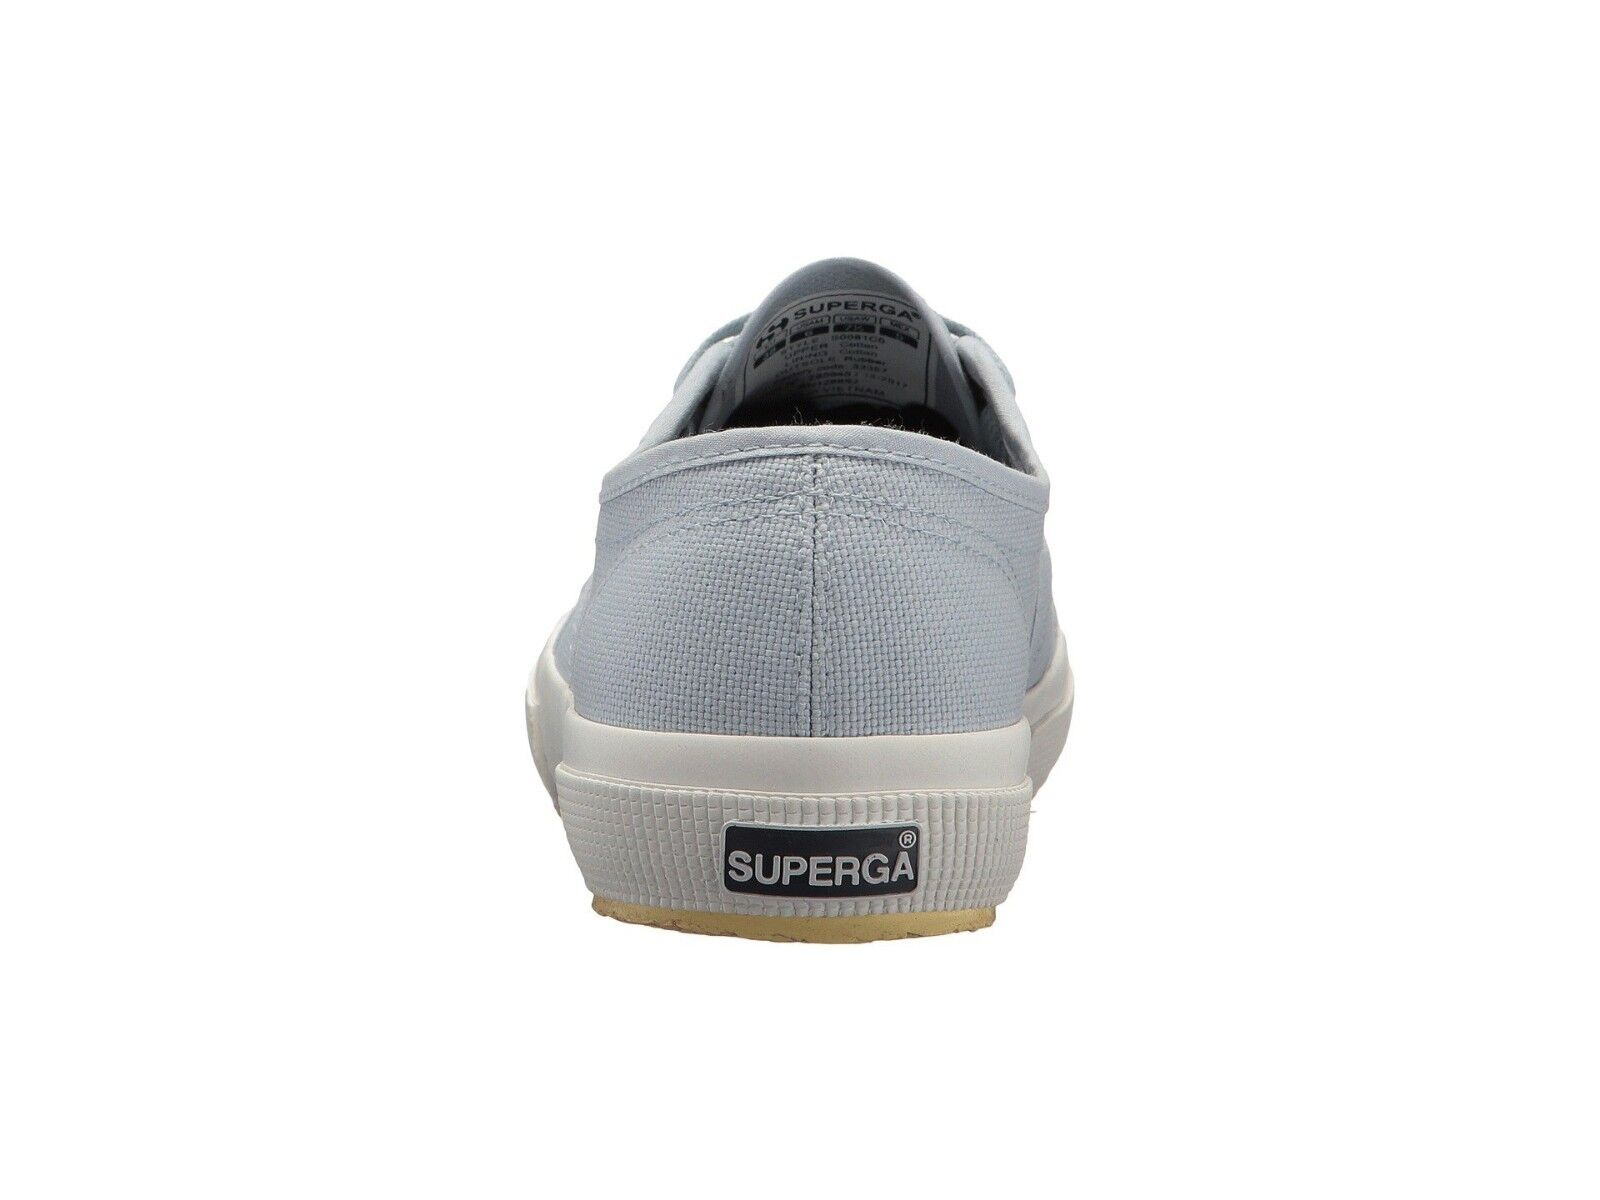 Superga 2750 Farbeeycotw Farbeeycotw Farbeeycotw  Lace-Up Sneaker Dusty Blau Größe US Damens 9.5/Men 8 260bdf